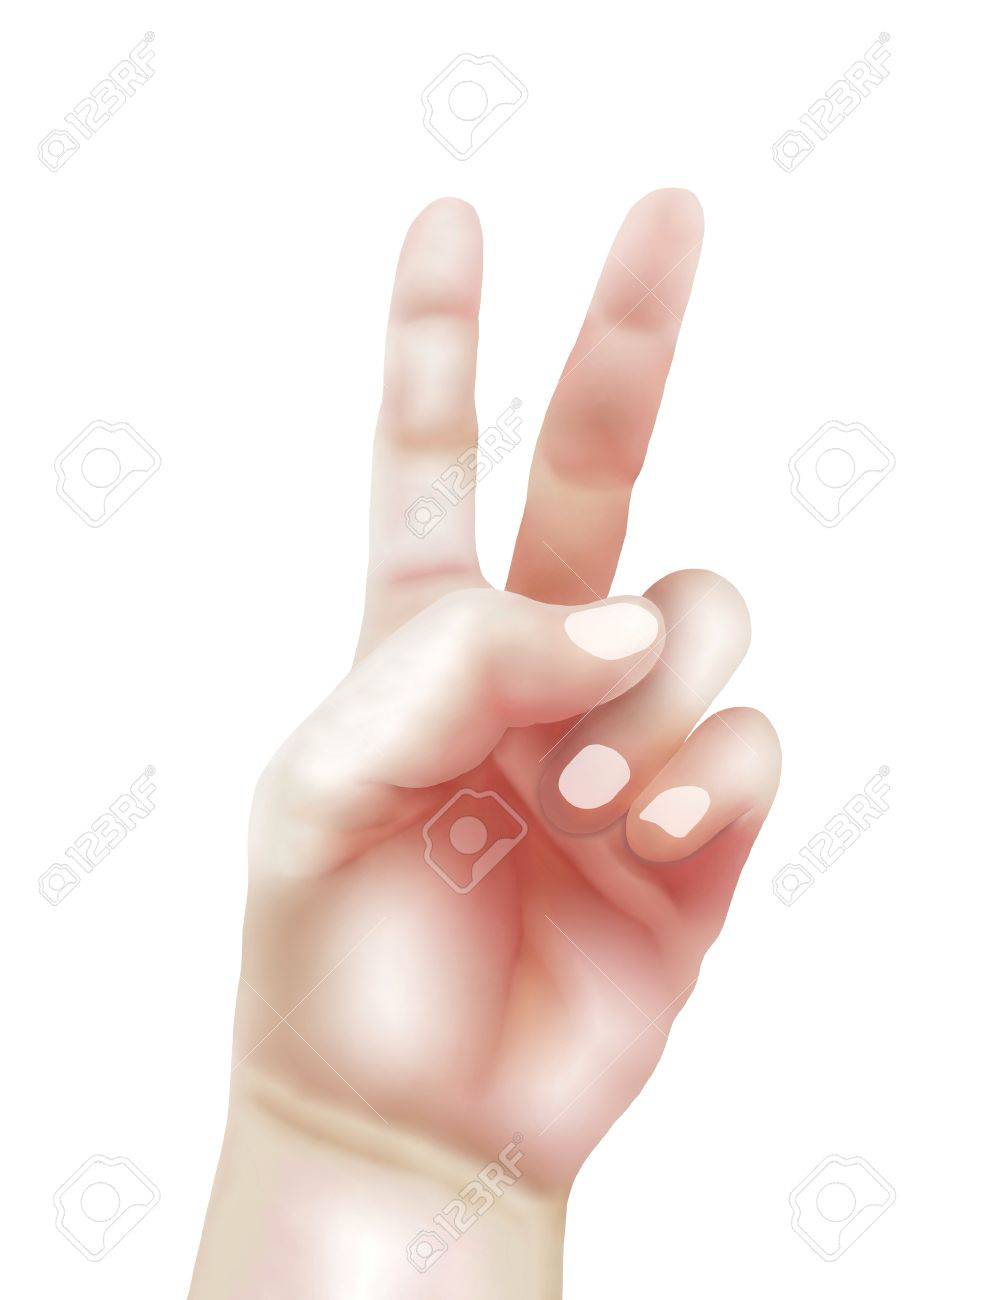 992x1300 Hand Drawing Of Person Showing Hand Sign Up In The Air For Present